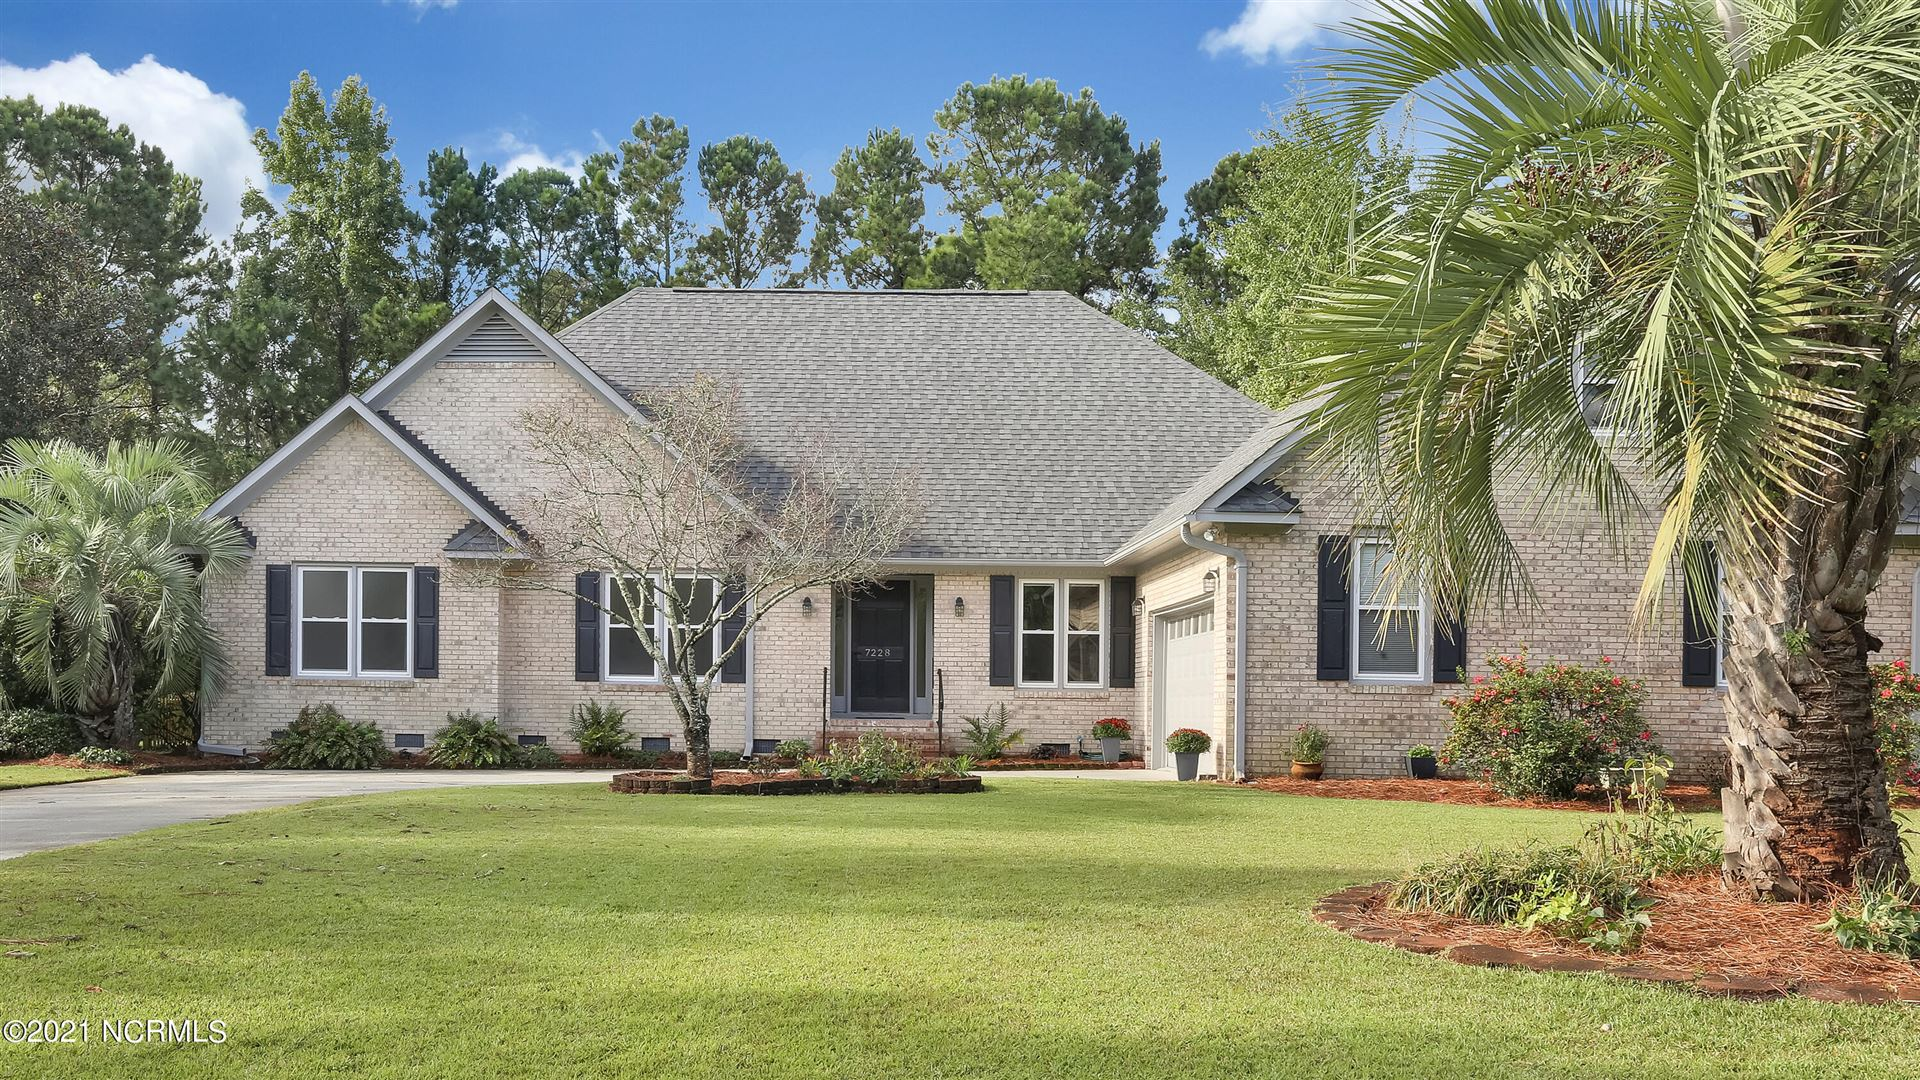 Photo of 7228 Orchard Trace, Wilmington, NC 28409 (MLS # 100293716)